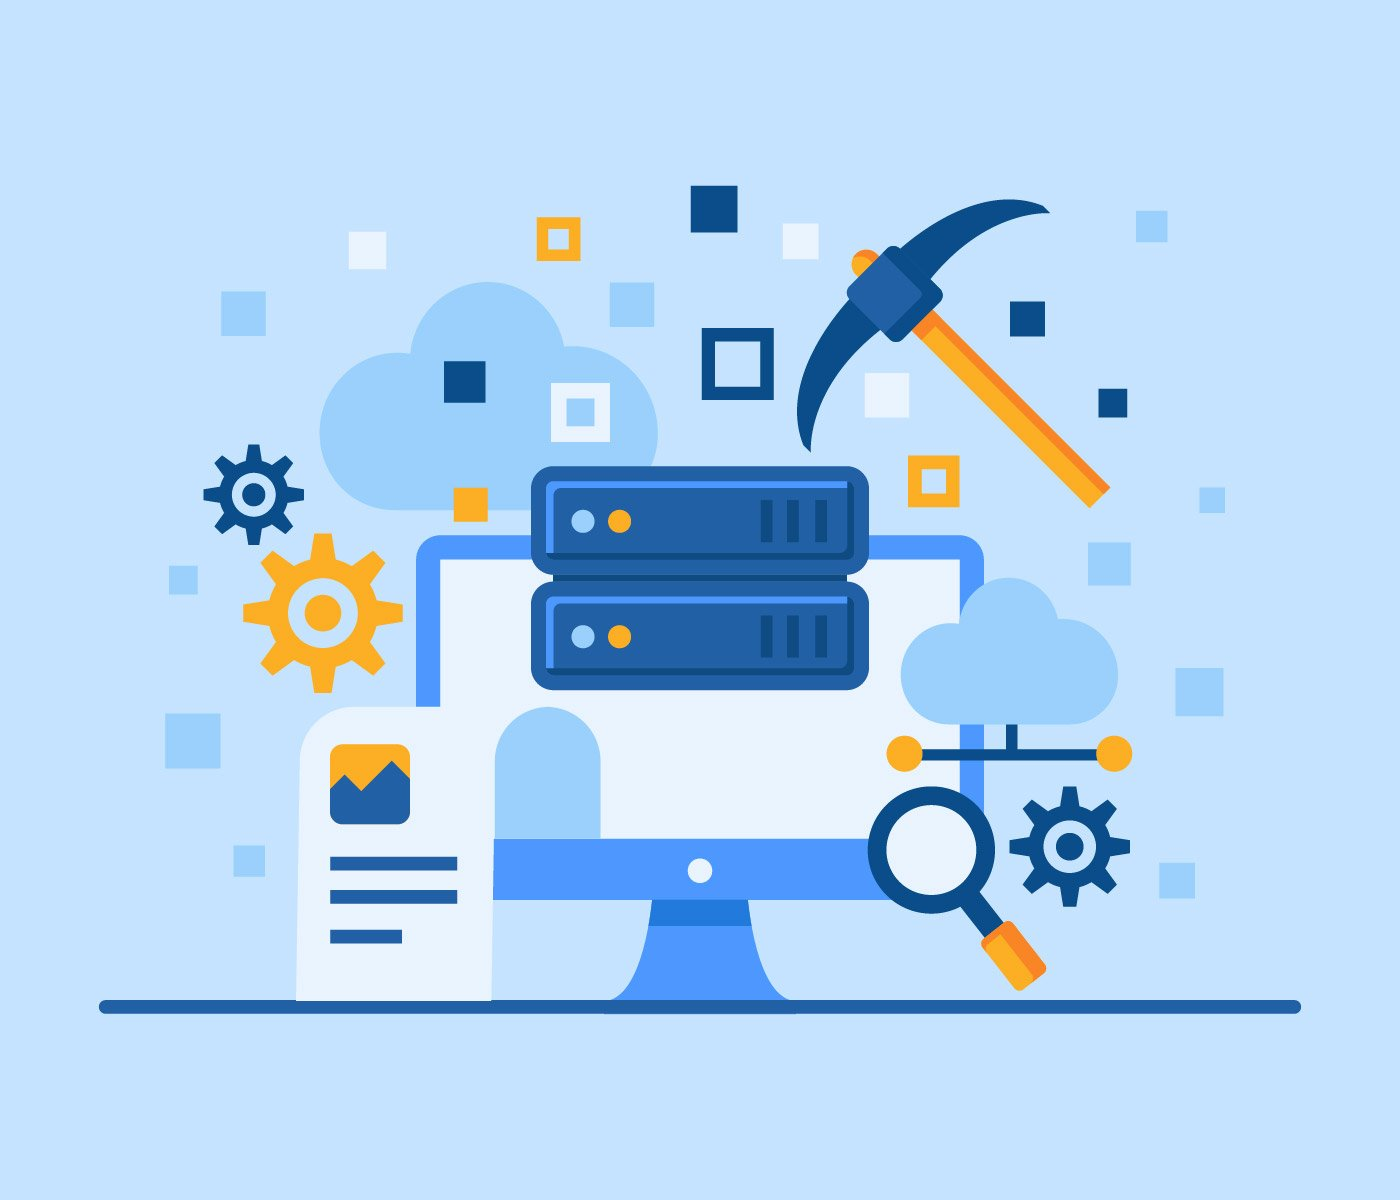 Data Mining & Web Scraping Experts In The Pool Industry - Put Our Data Mining & Web Scraping Skills To Use In Your Pool Marketing